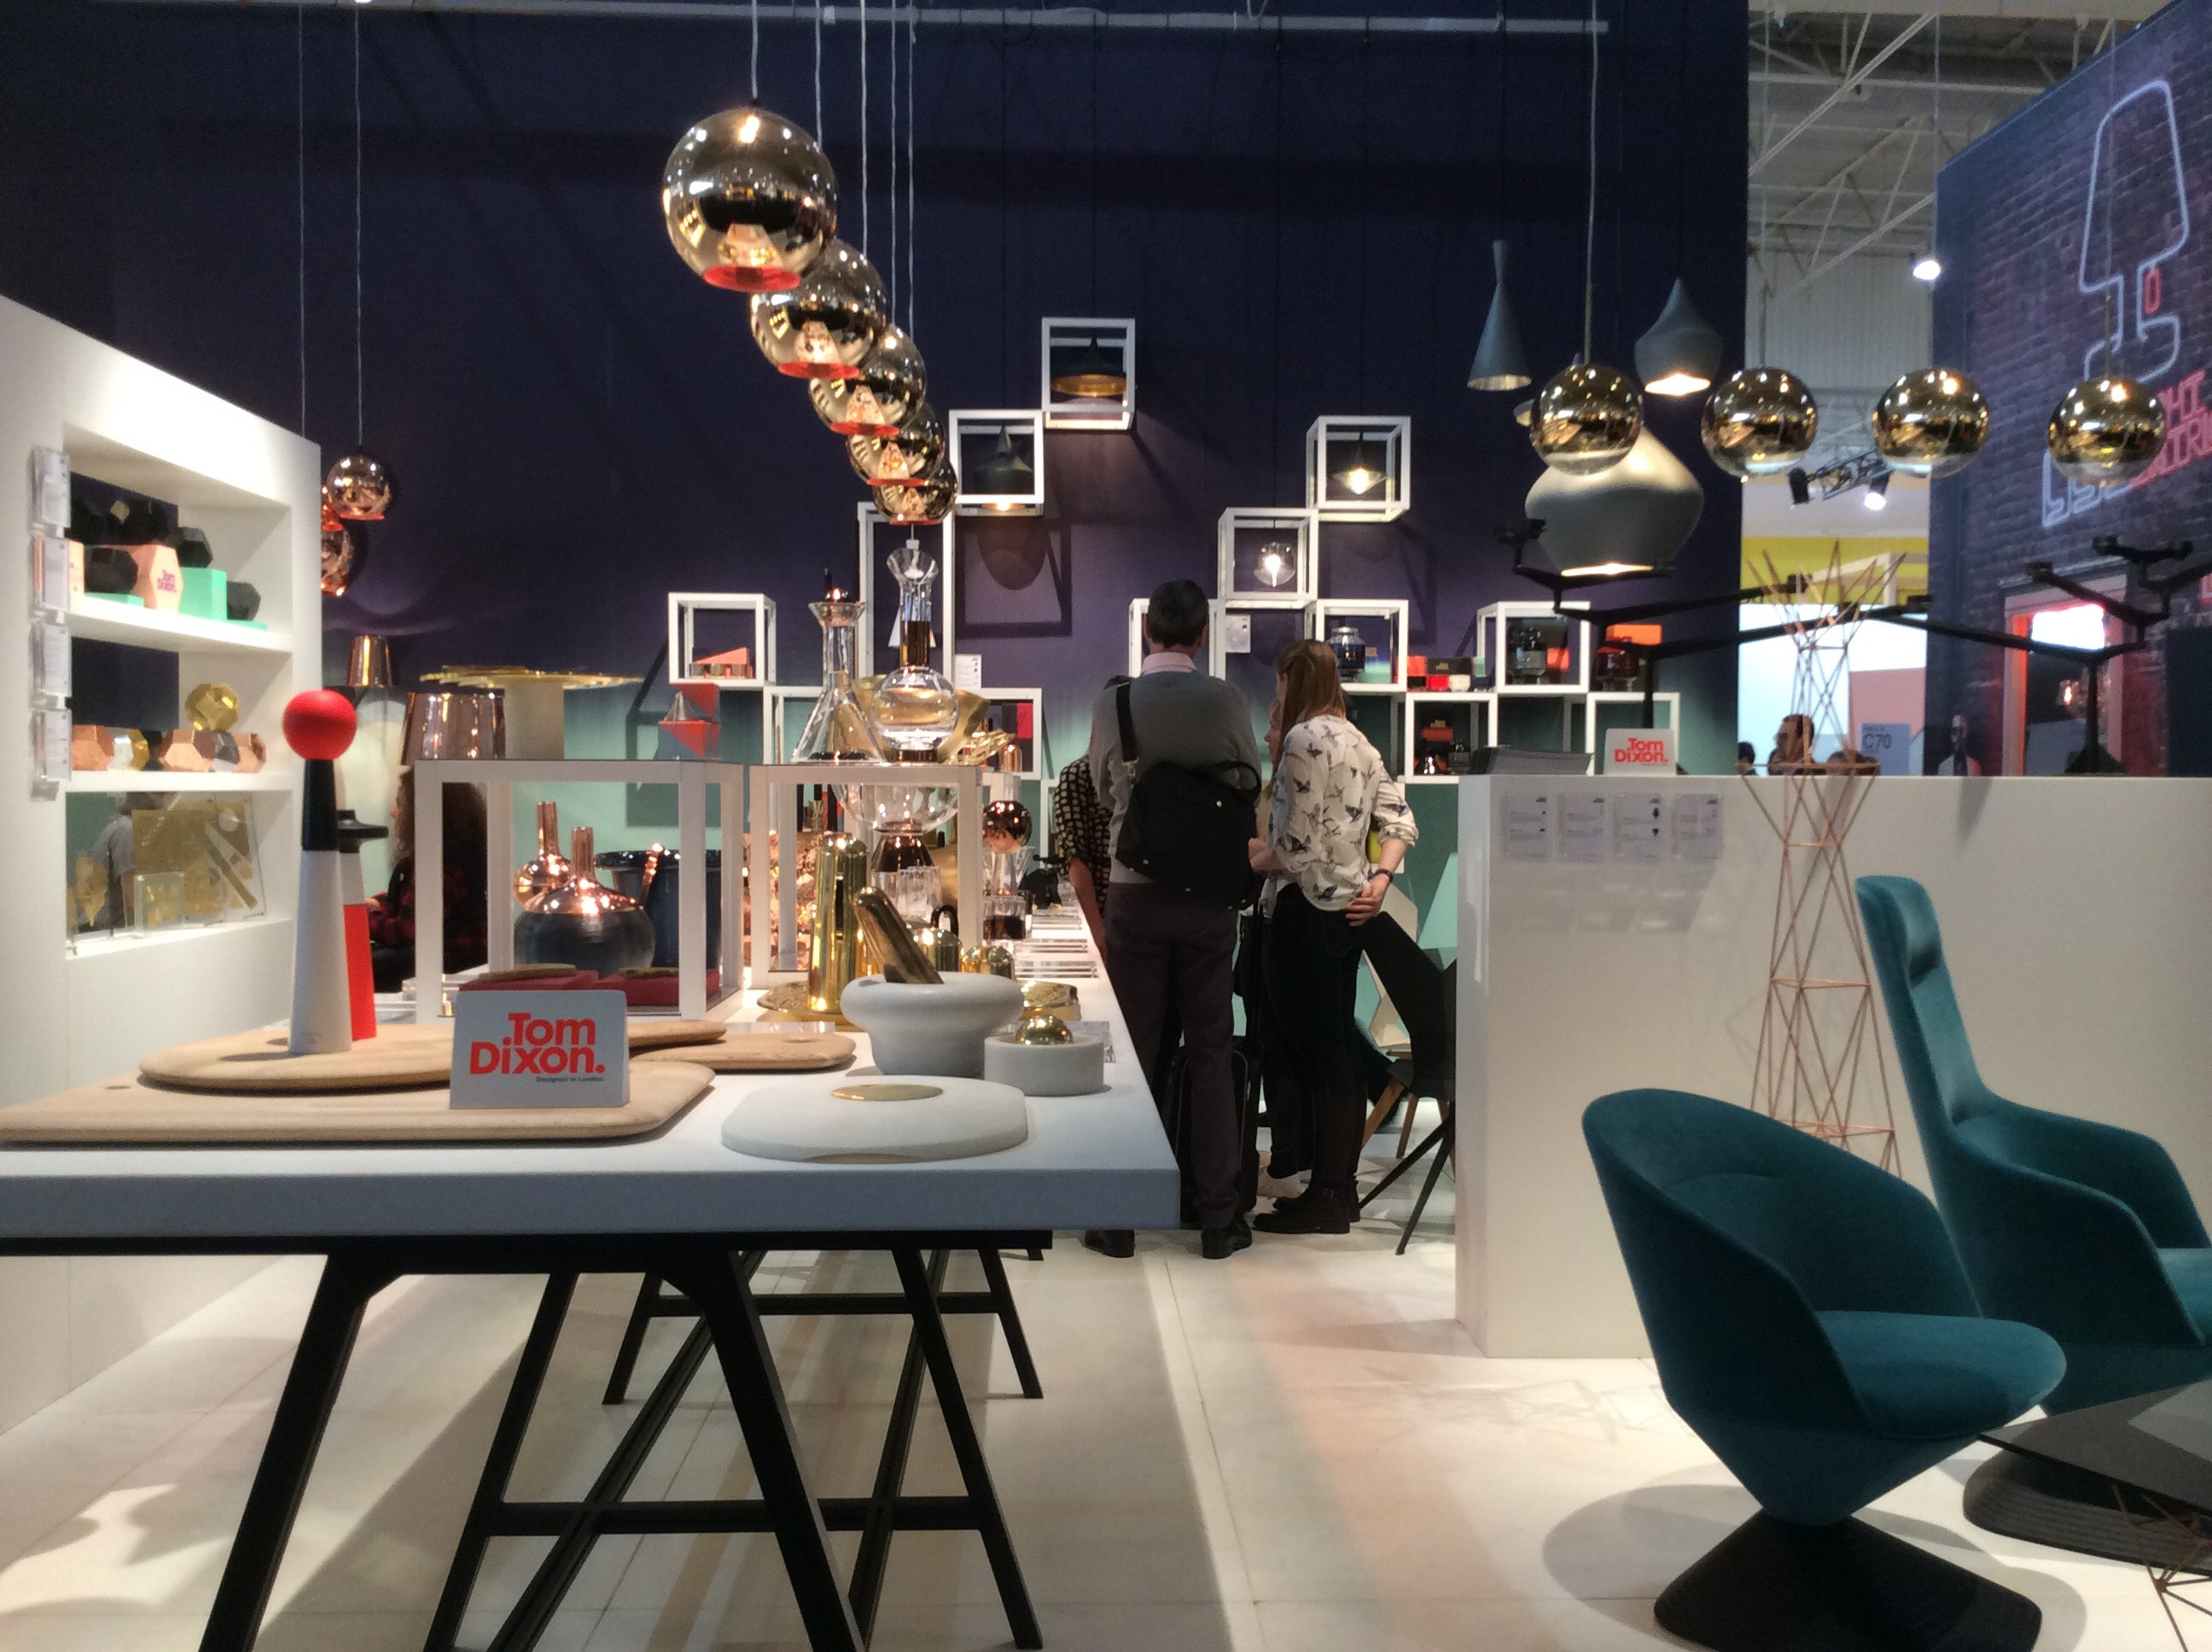 Design News: Get Ready for Maison et Objet Paris maison et objet paris Design News: Get Ready for Maison et Objet Paris Get Ready for Maison et Objet Paris